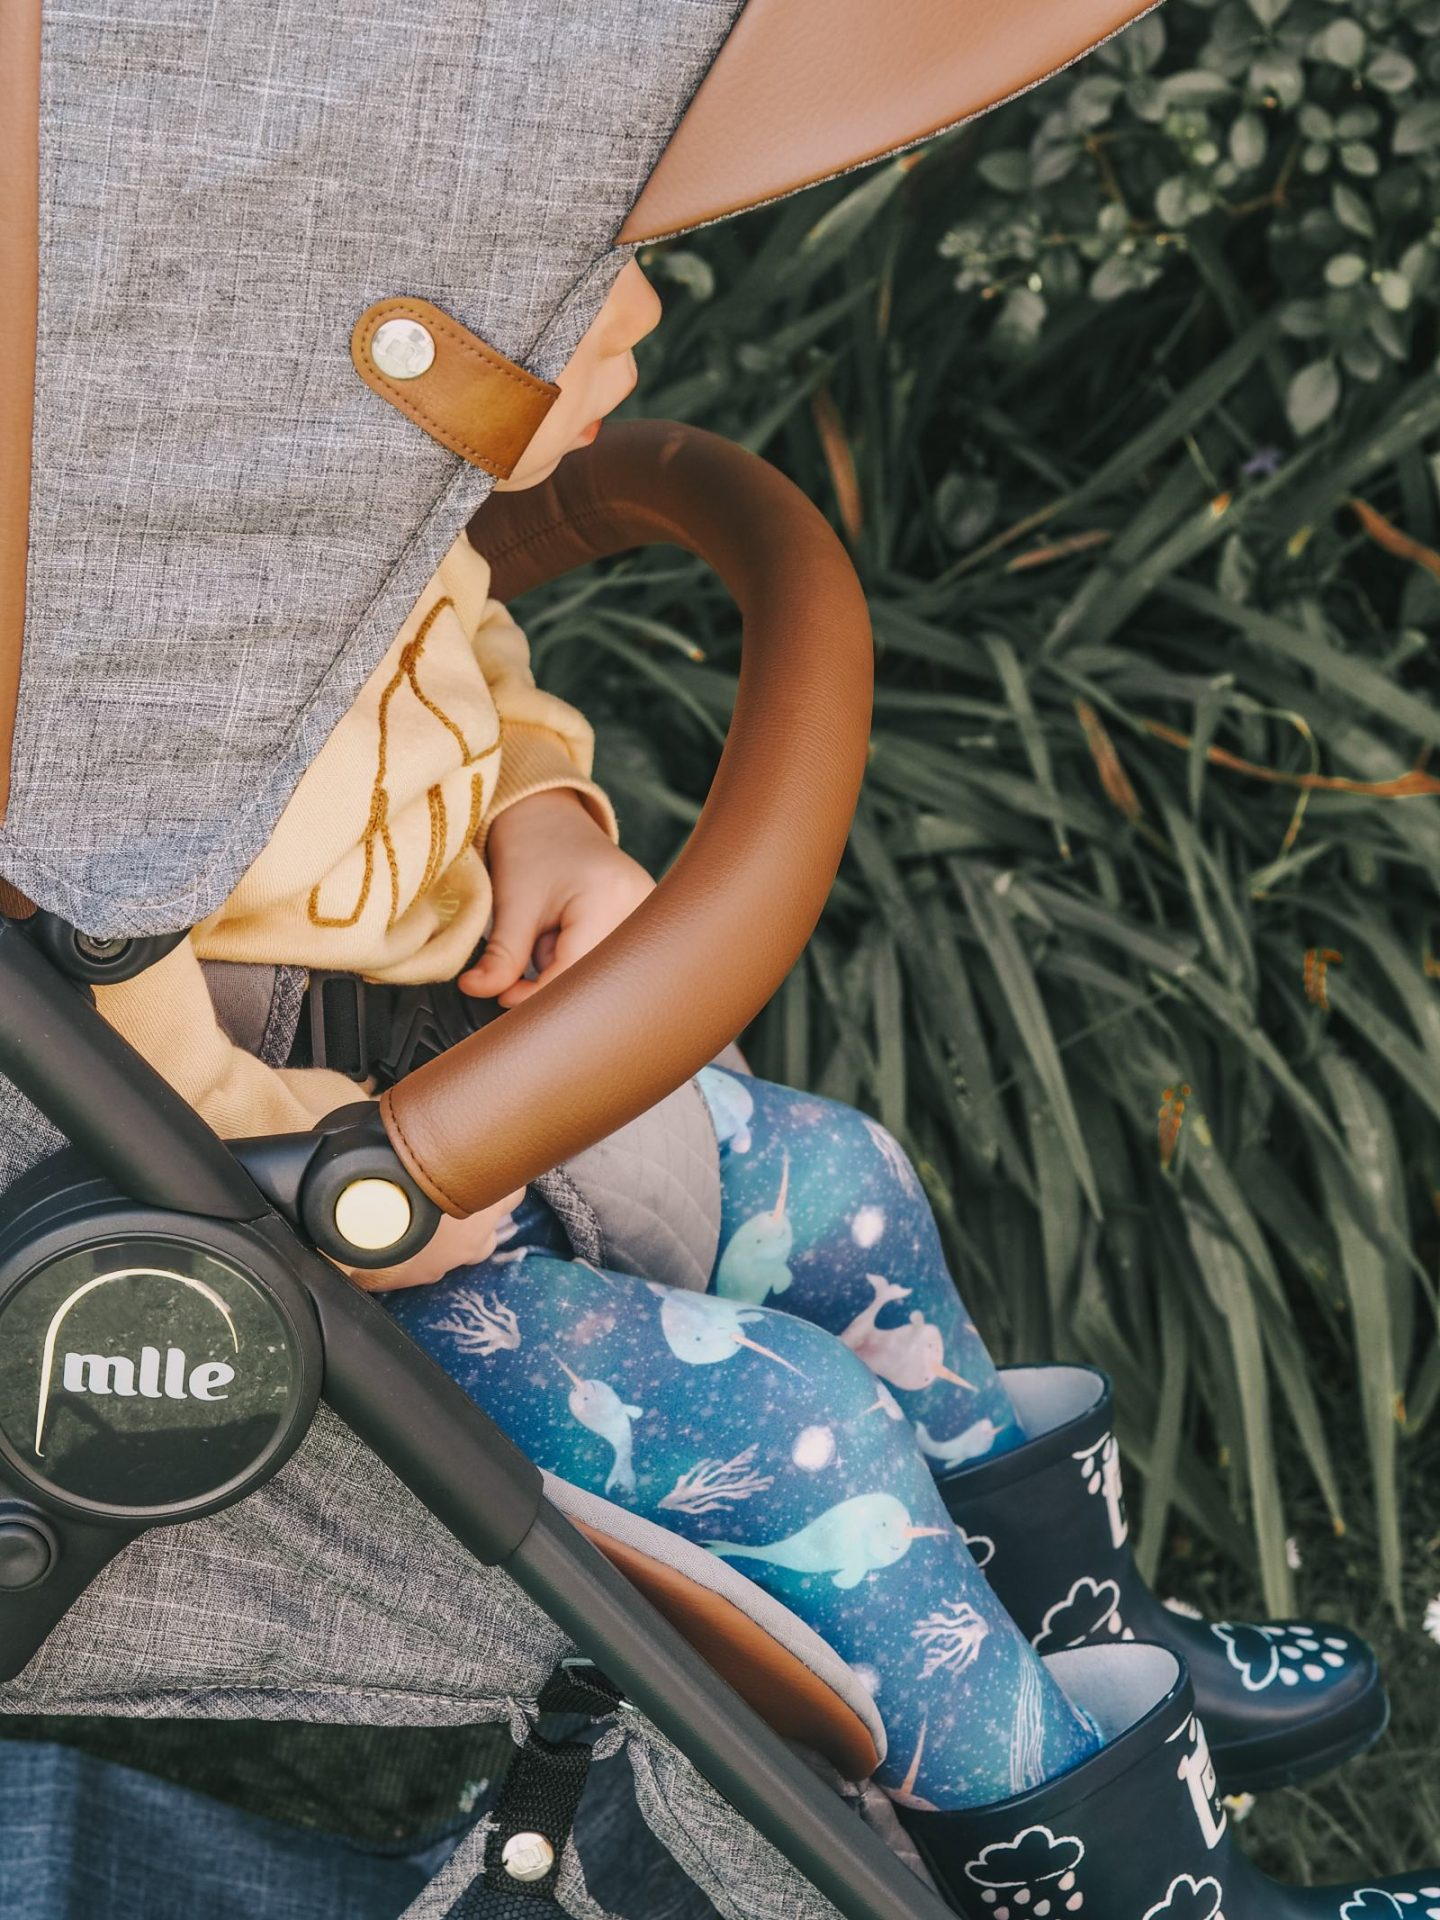 Mlle Baby Venture - An Earth Conscious Pushchair